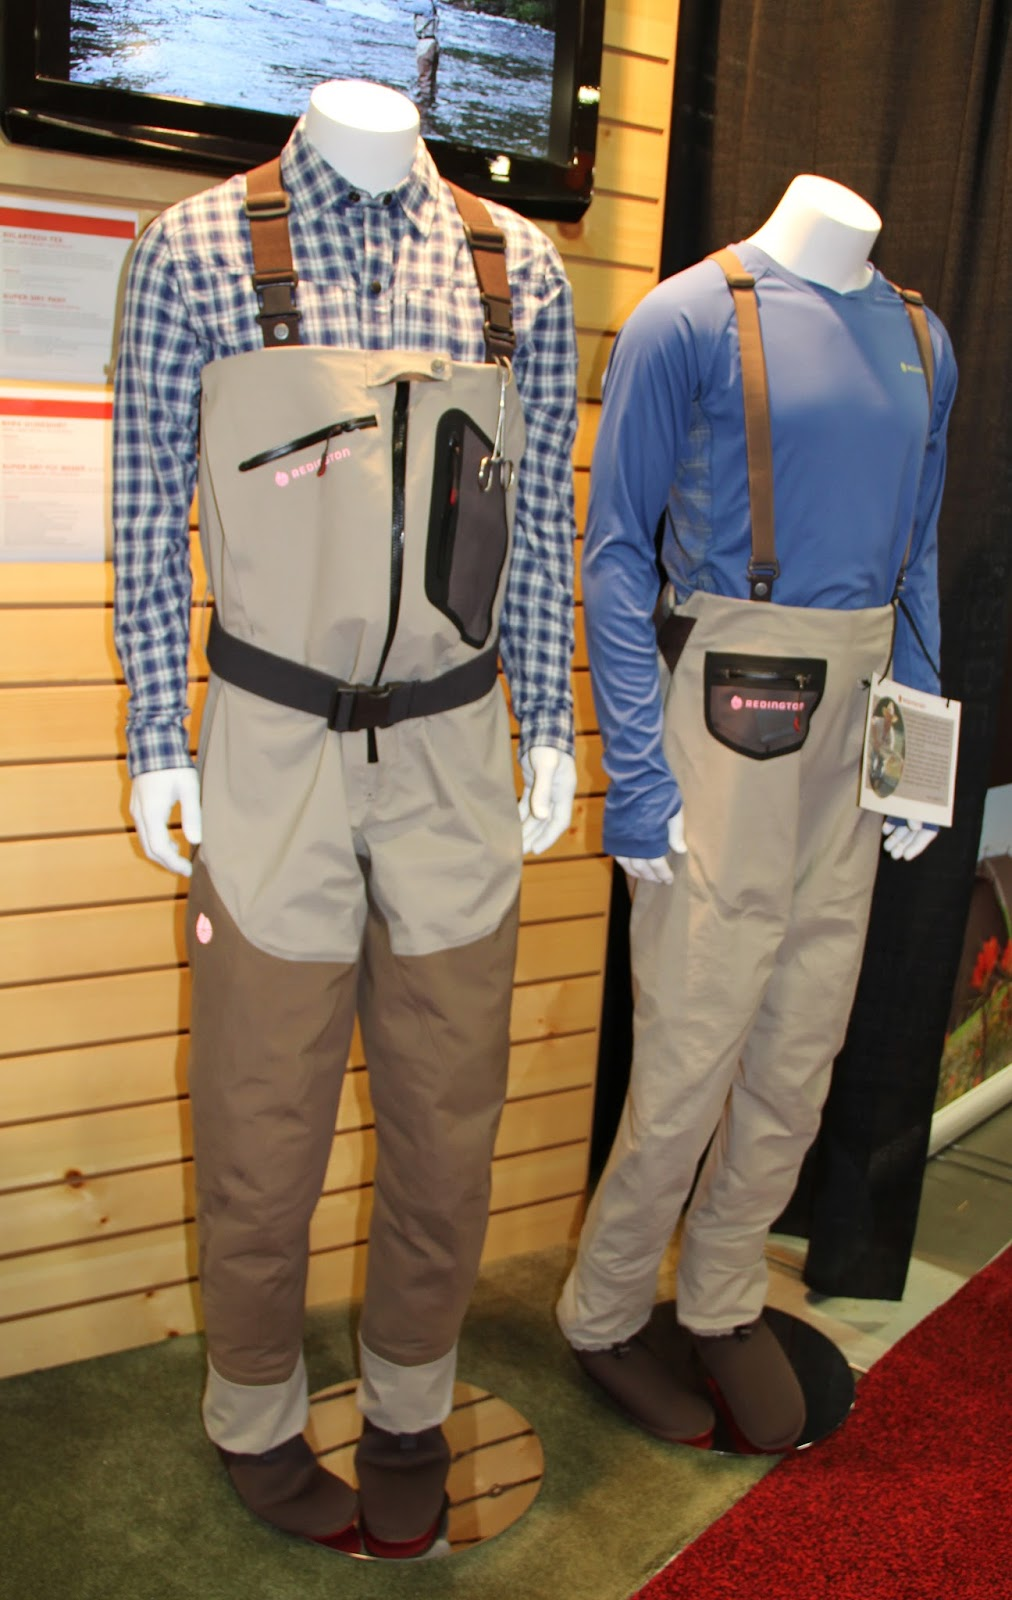 9a8ad055bfcac HOLIDAY GIFTS-GET FLY FISHING Redington, Sage, Eddie Bauer- Rods, Reels,  Waders, Gear